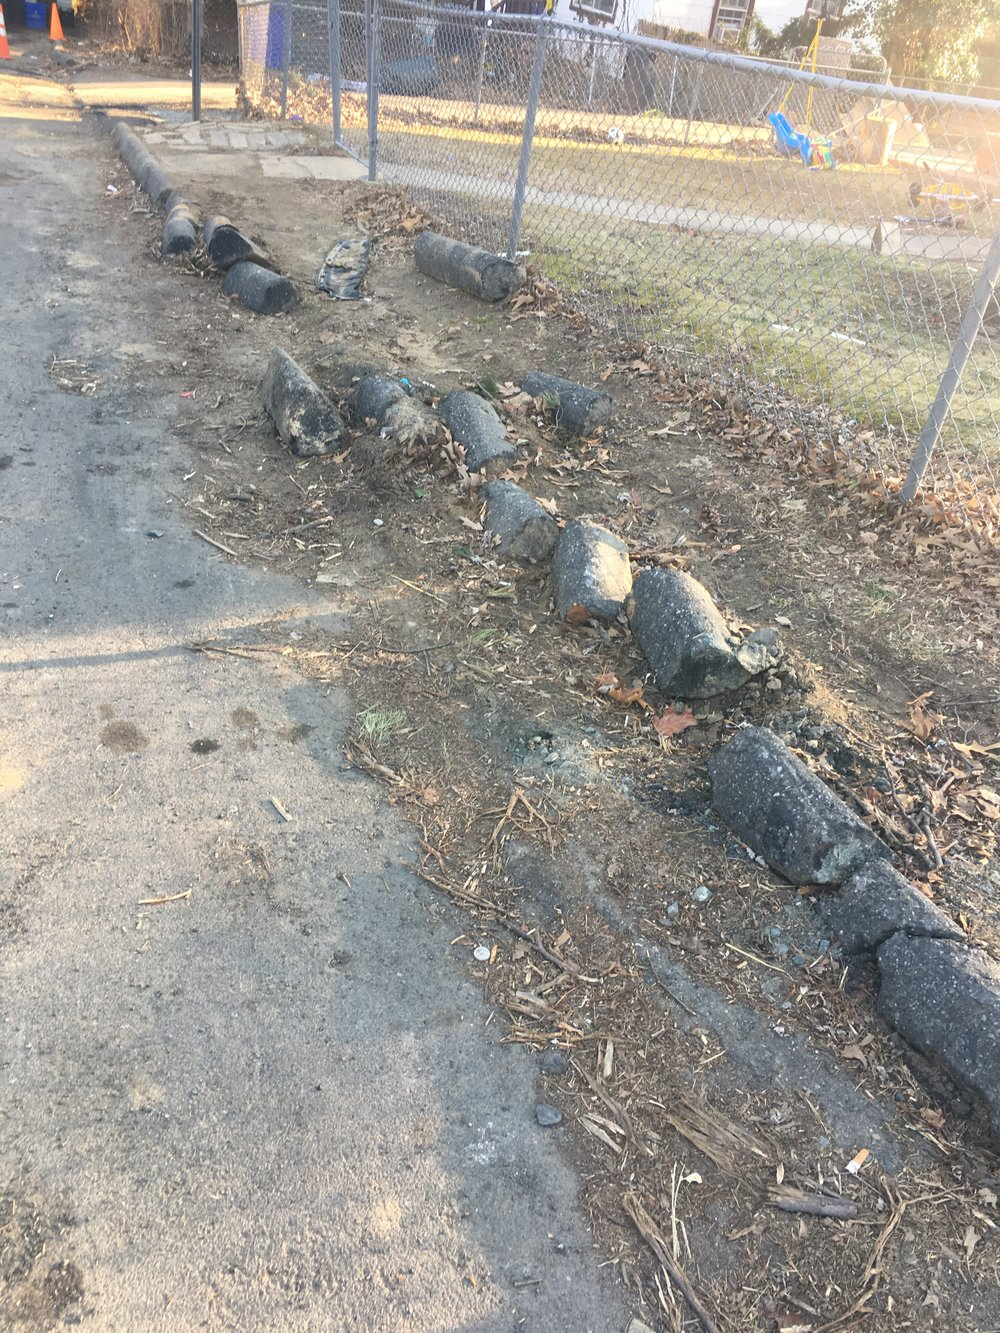 Curbs found in the Garland neighborhood.